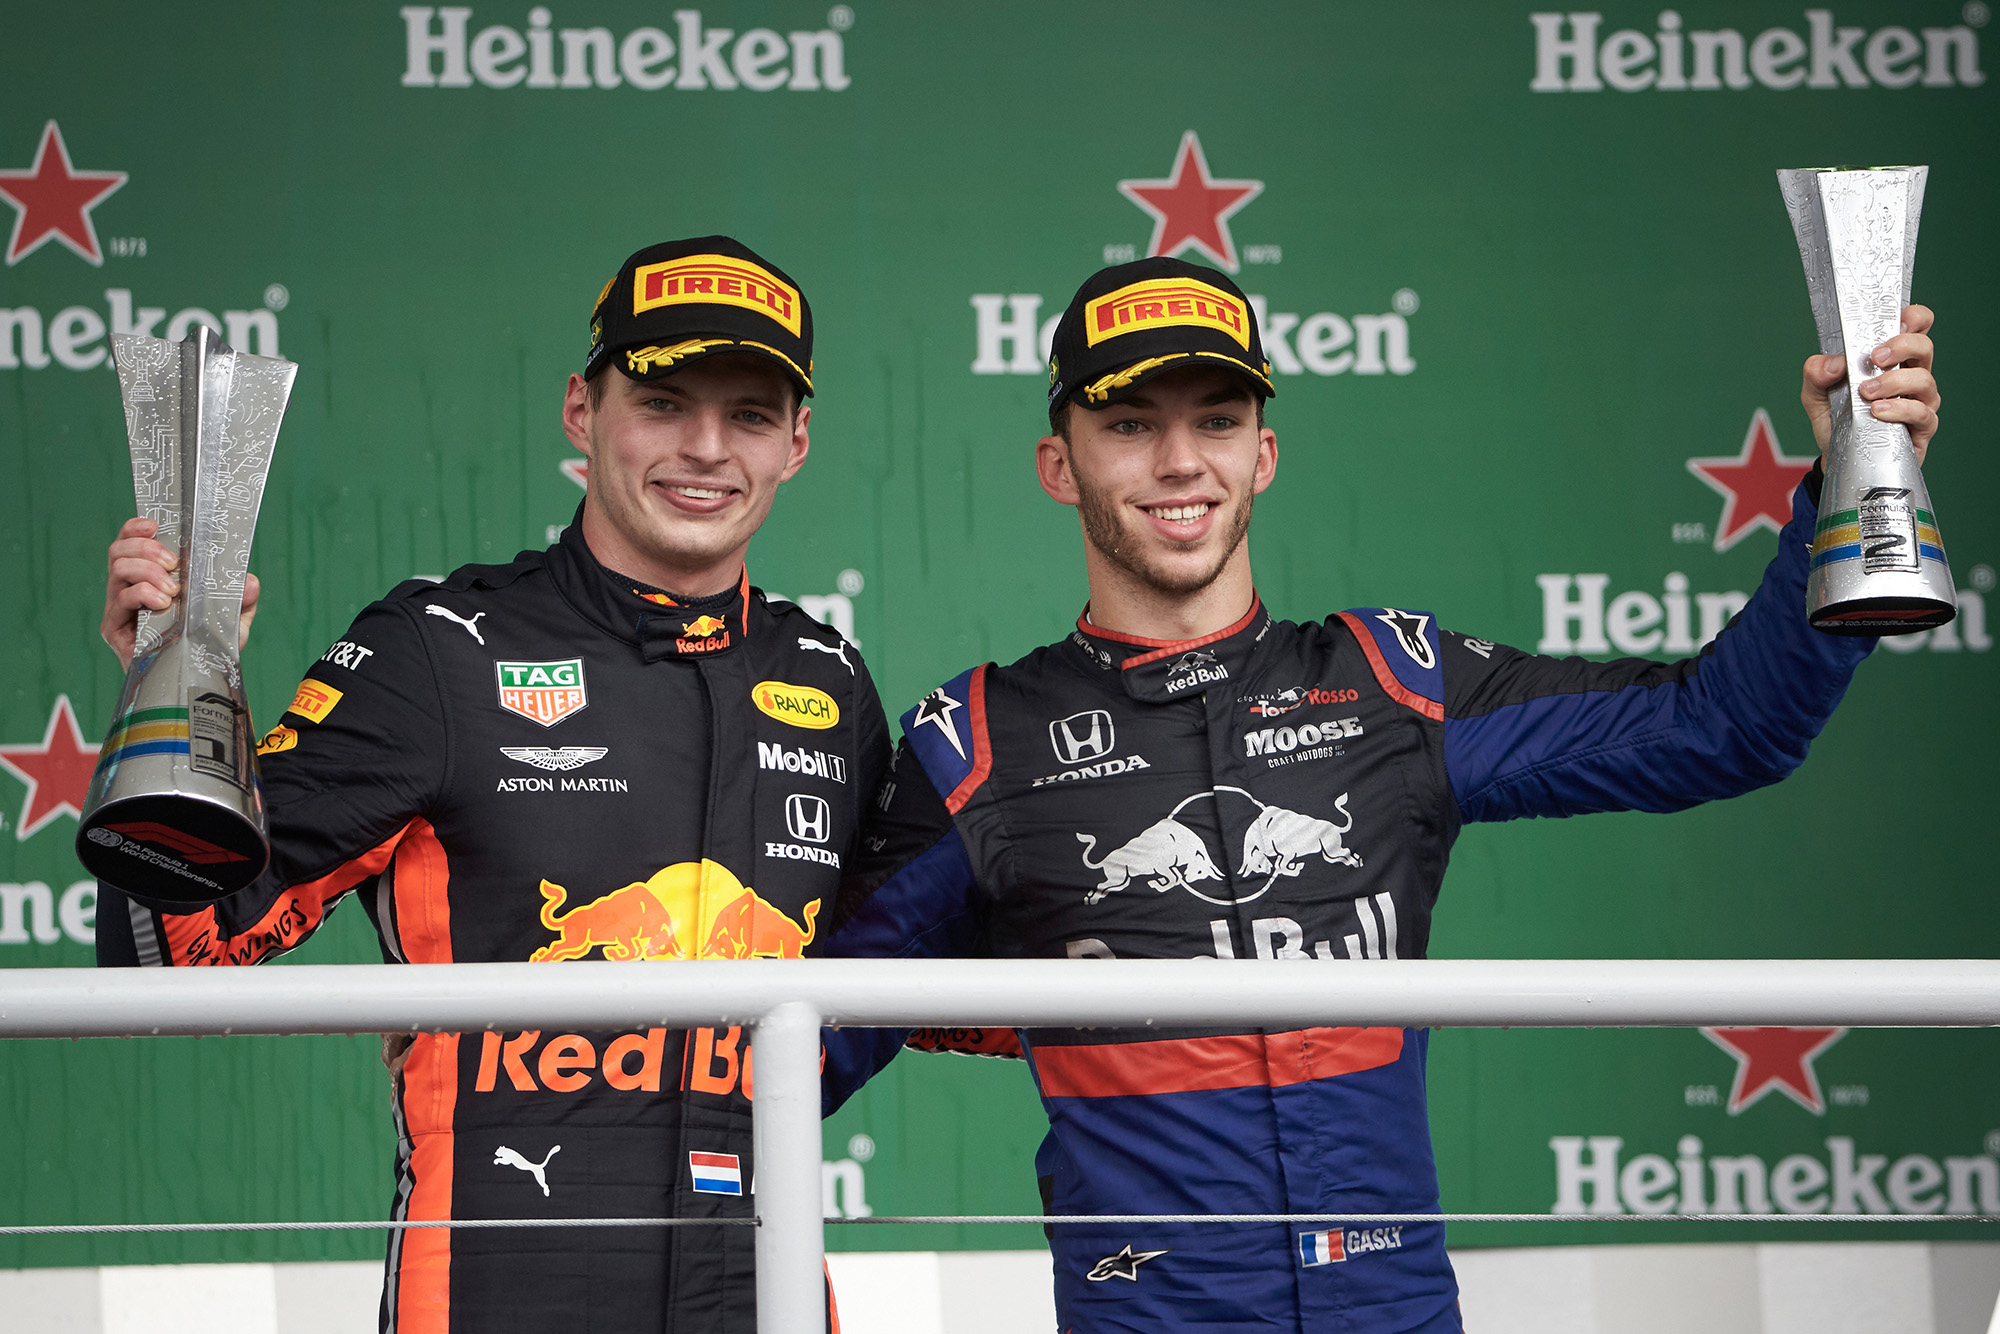 Max Verstappen and Pierre Gasly on the podium at the 2019 Brazilian Grand Prix